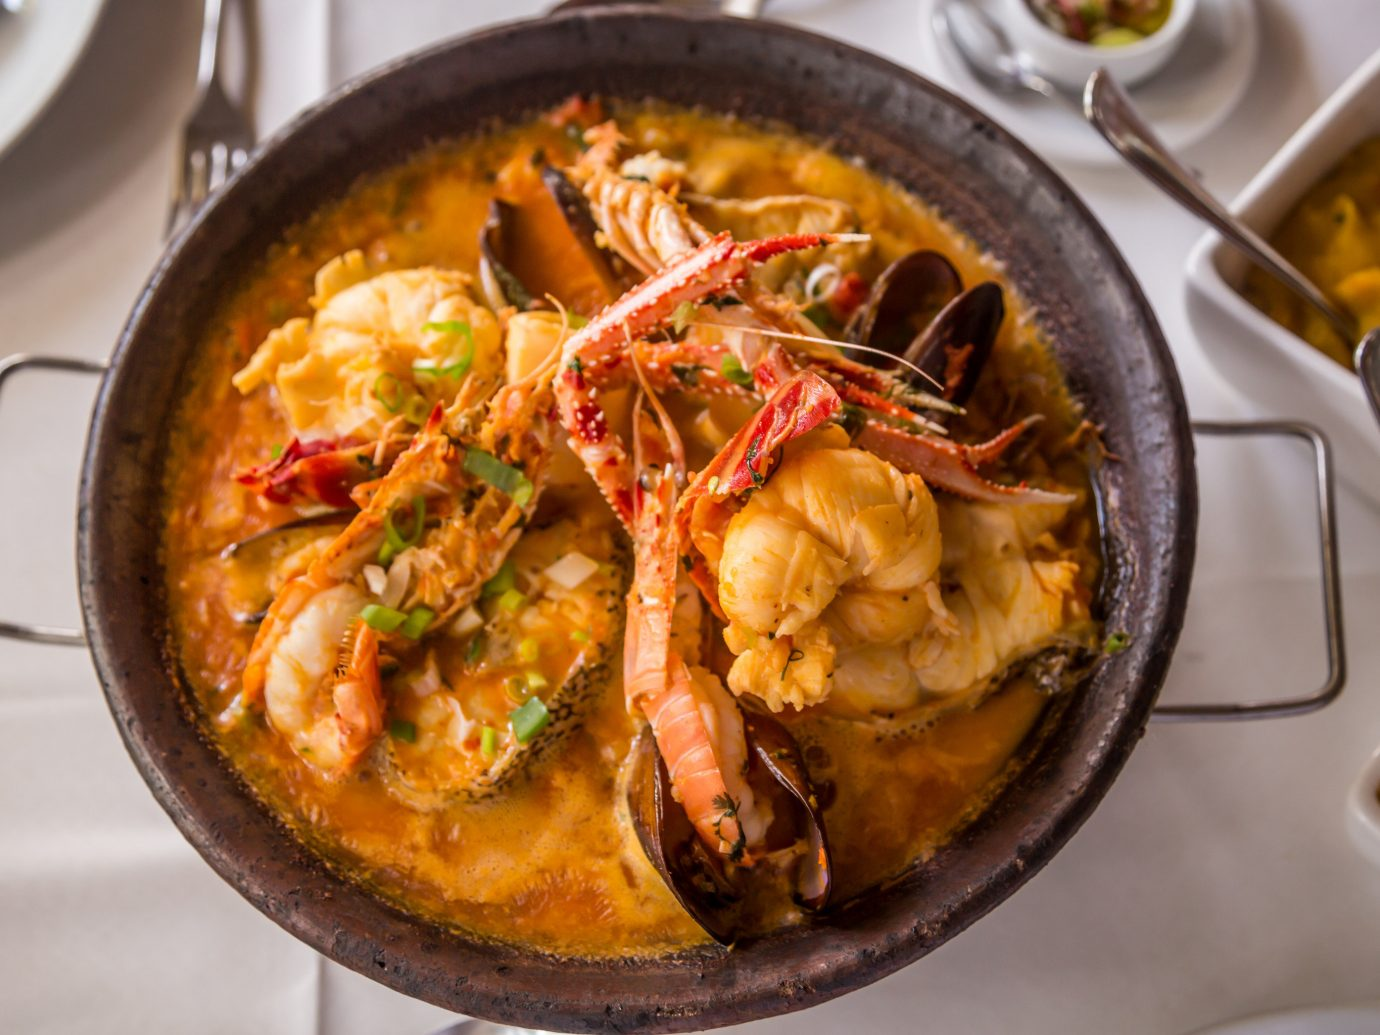 Beaches Brazil Trip Ideas food dish cuisine bowl bouillabaisse curry Seafood produce thai food asian food pan meat stew meal cooked several soup